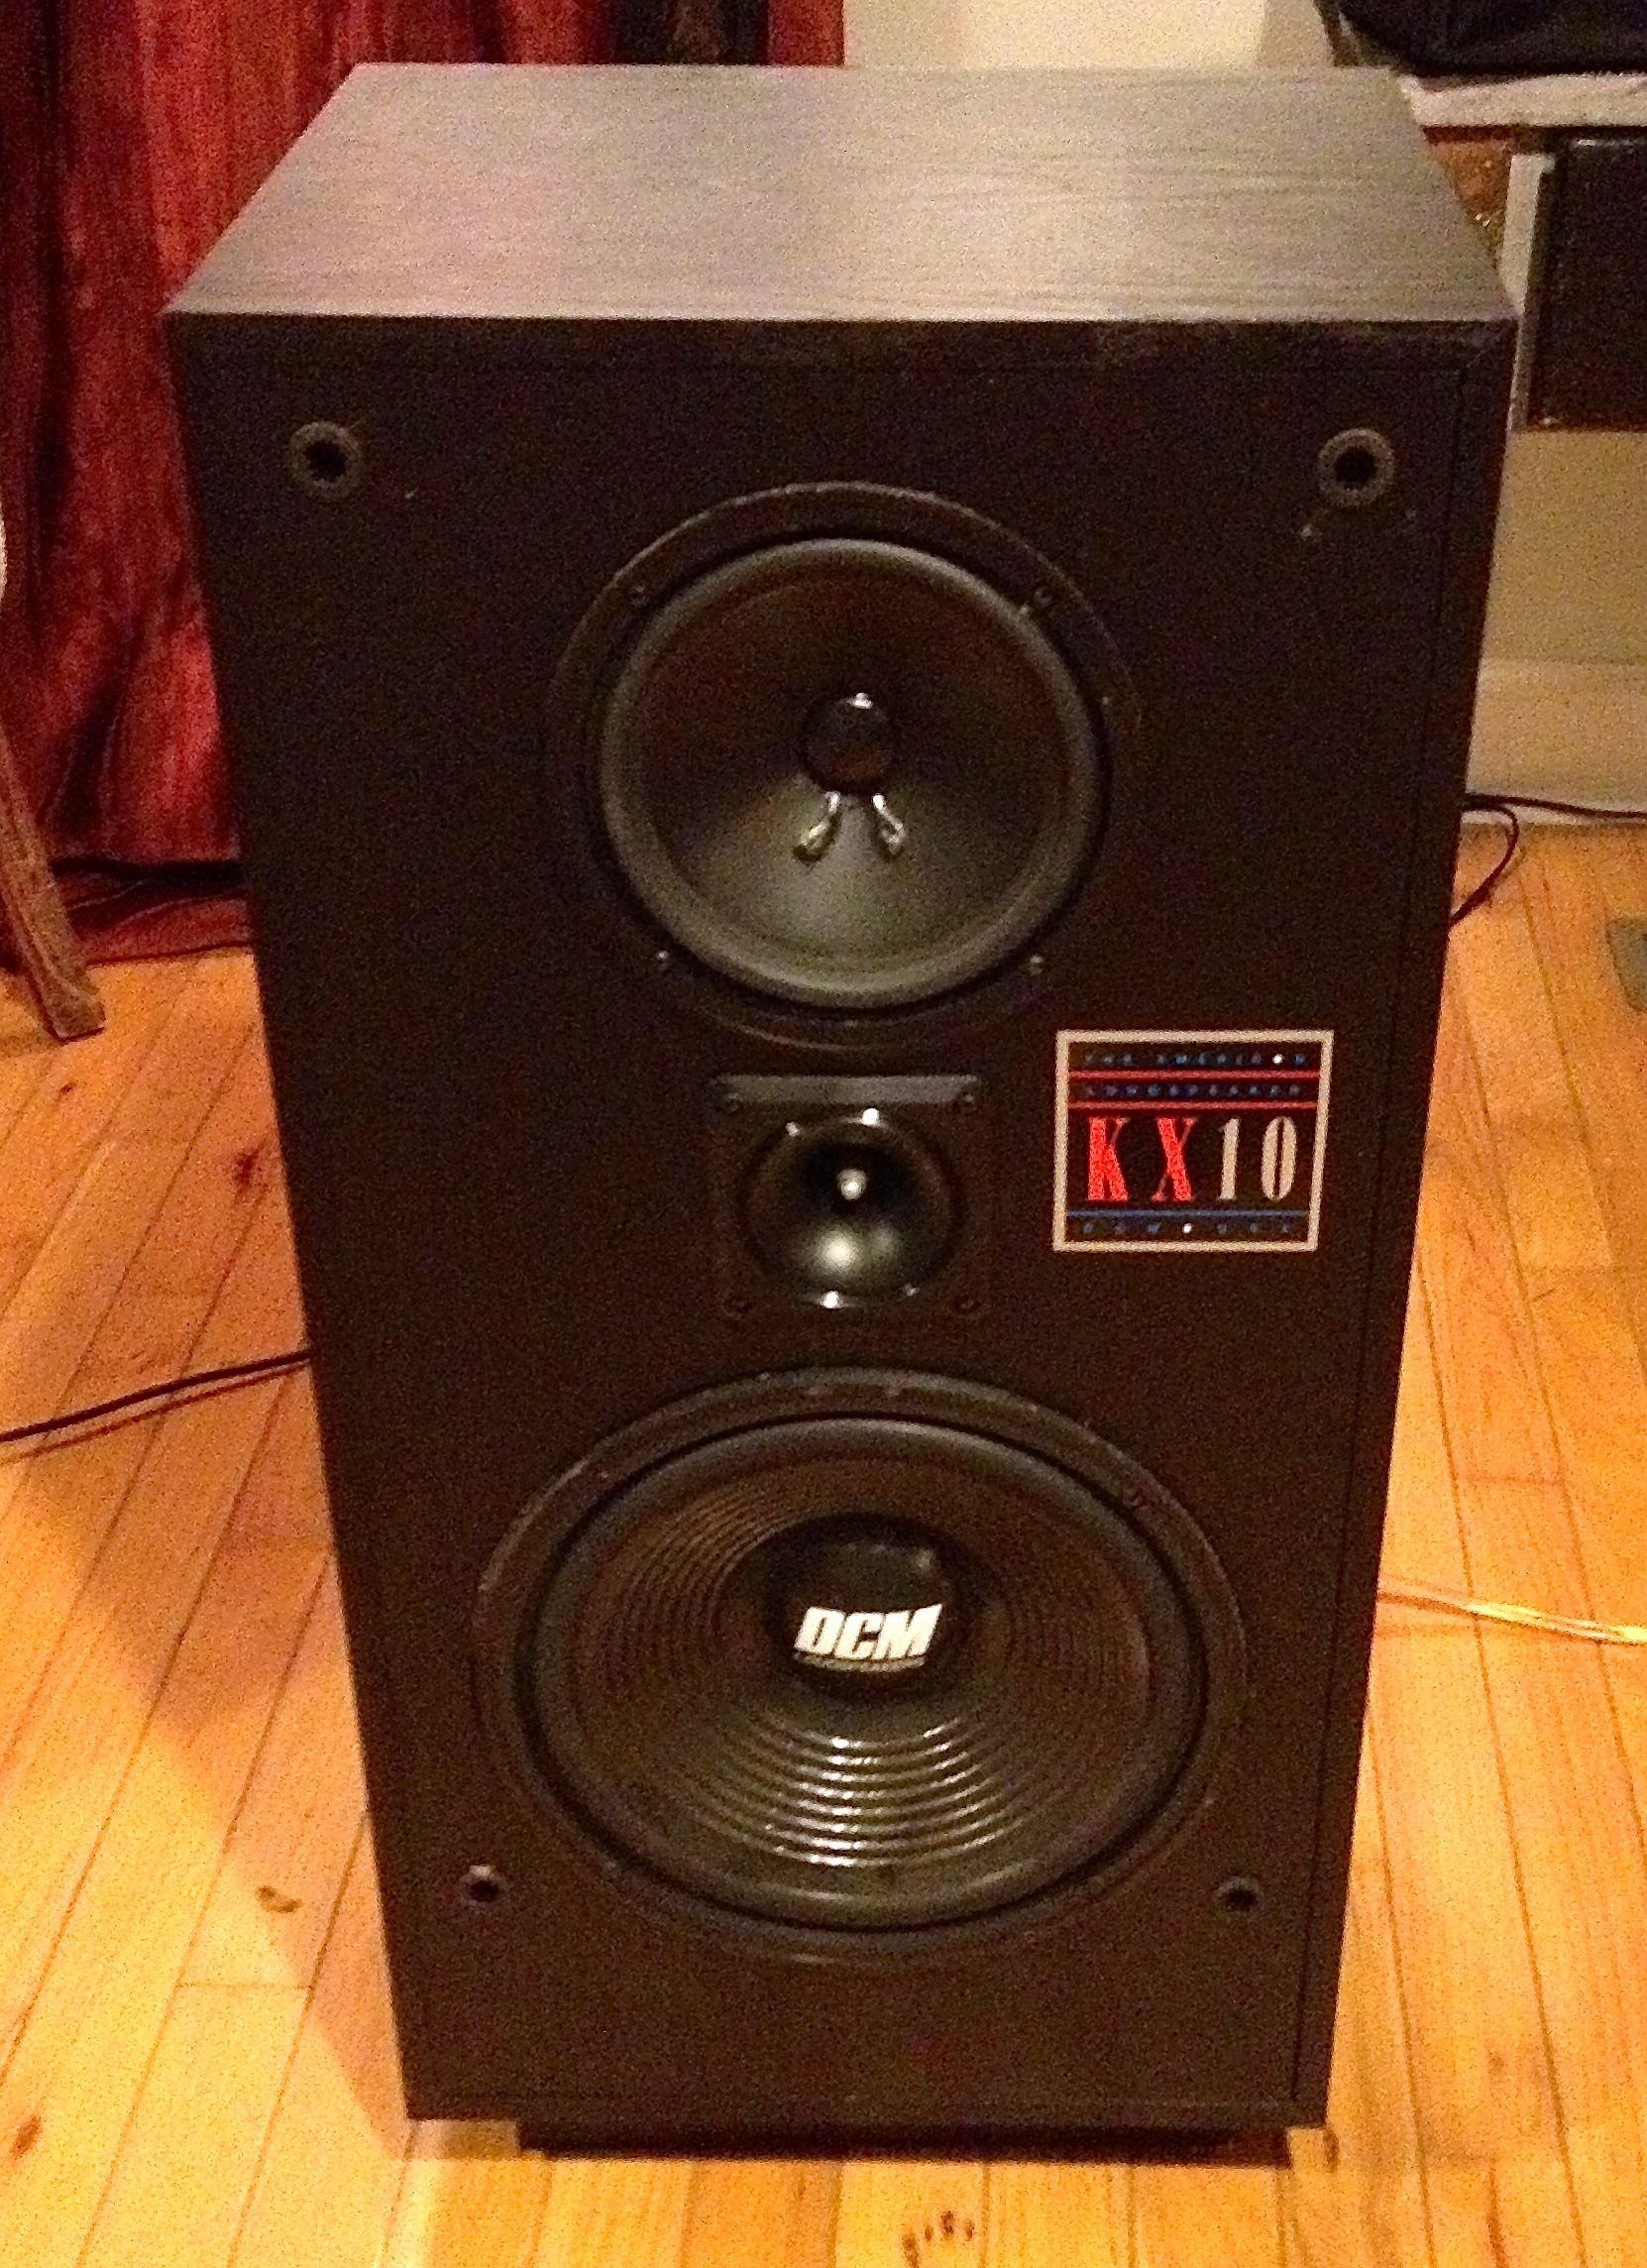 These Dcm Kx 10 Speakers Are Really Fun And Sound Pretty Amazing They Are Big Speakers And Have A Big Brigh Big Speakers Surround Sound Systems Sound System